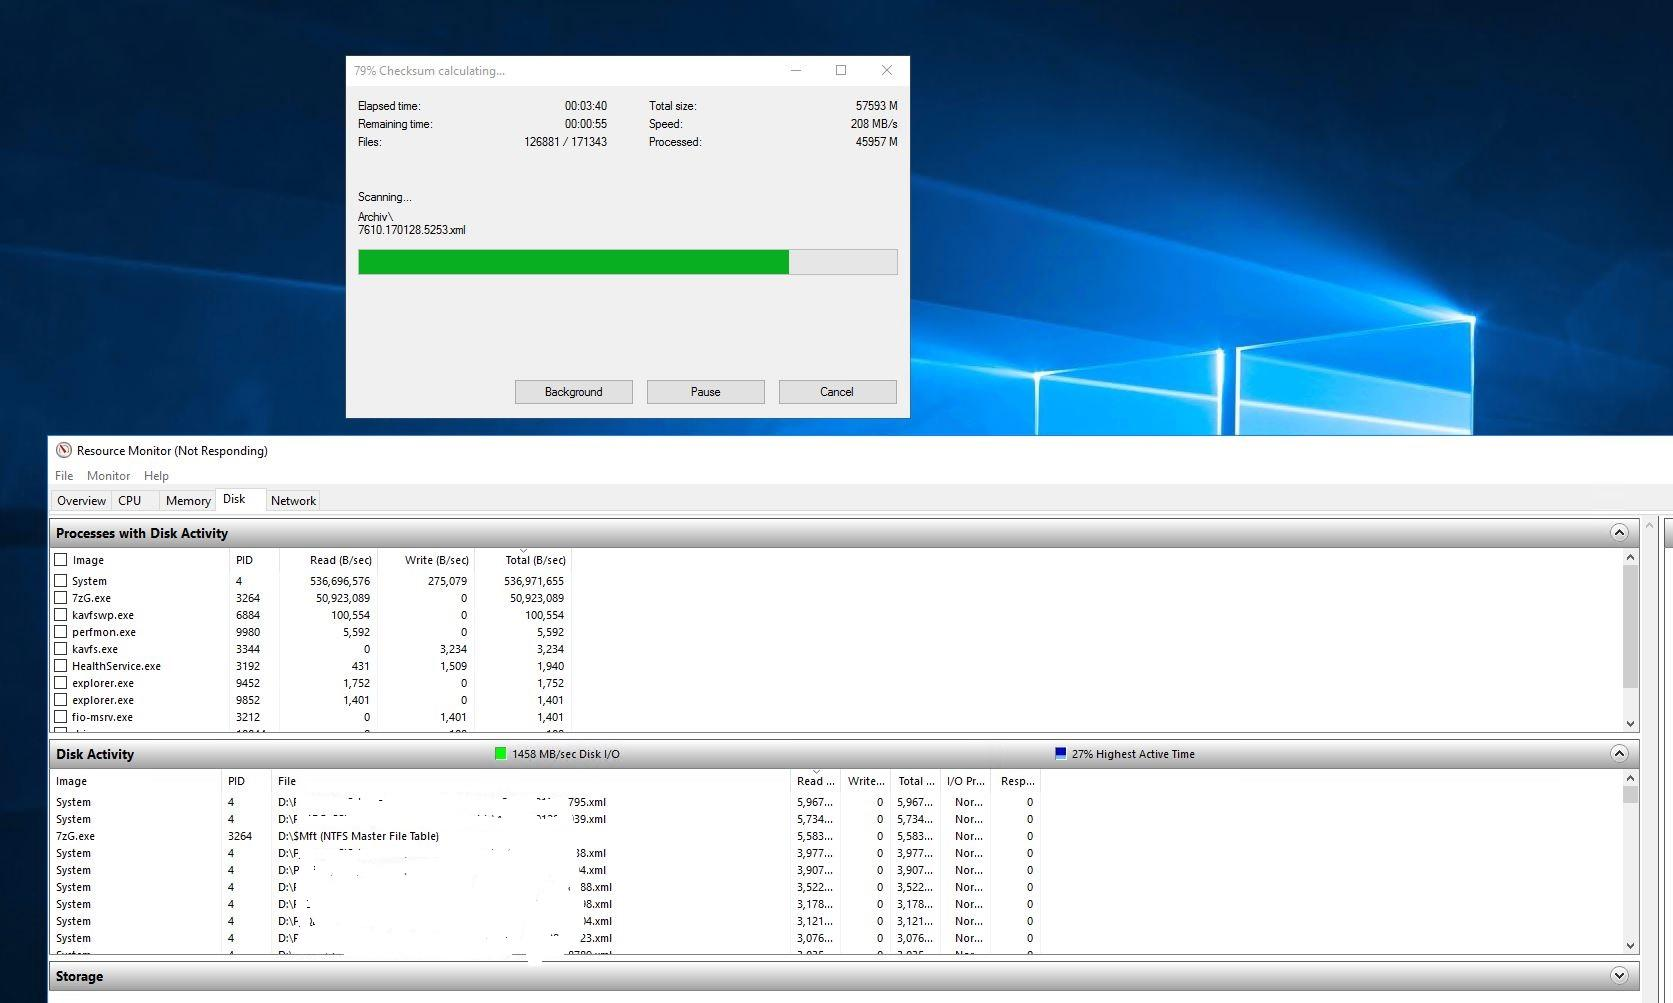 7-Zip / Discussion / Open Discussion: Performance drop when